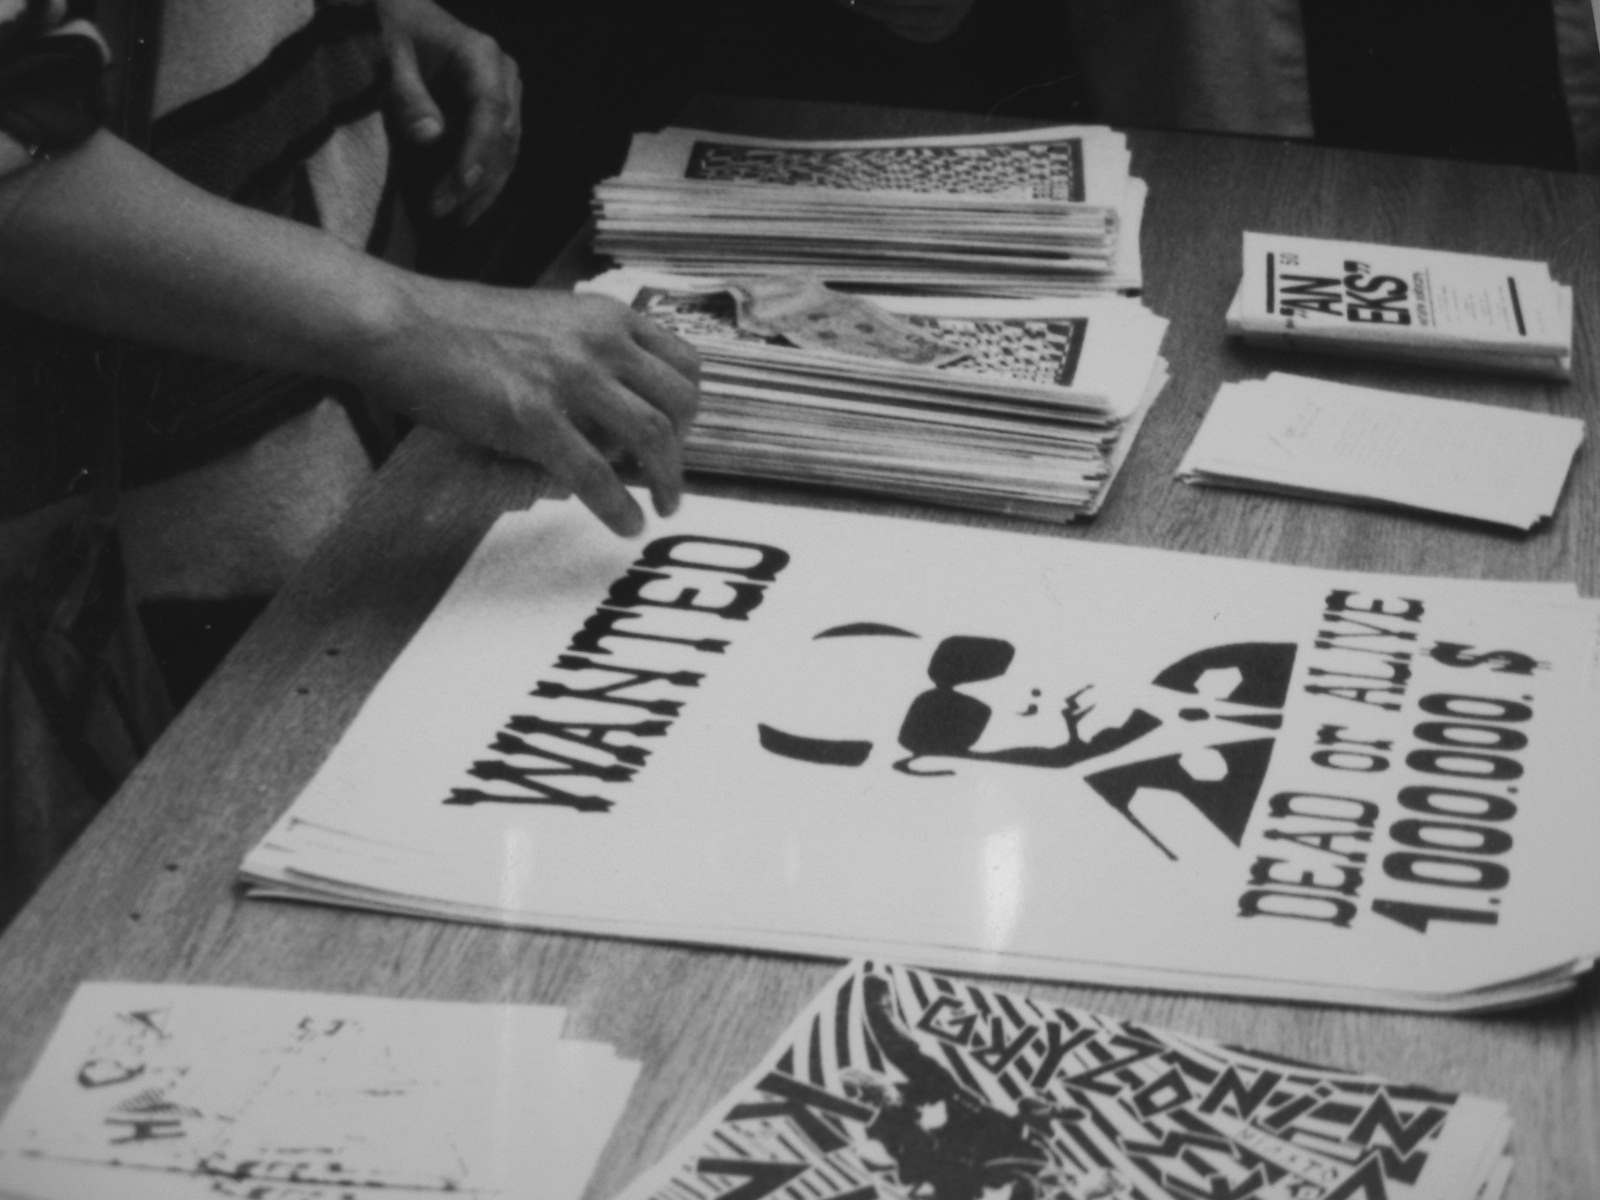 A scene from the happening 'The Day After' carried on Piotrkowska street in Łódź, June 06, 1989. Posters 'Wanted' by Krzysztof Raczyński are placed on the table for sale during the event.